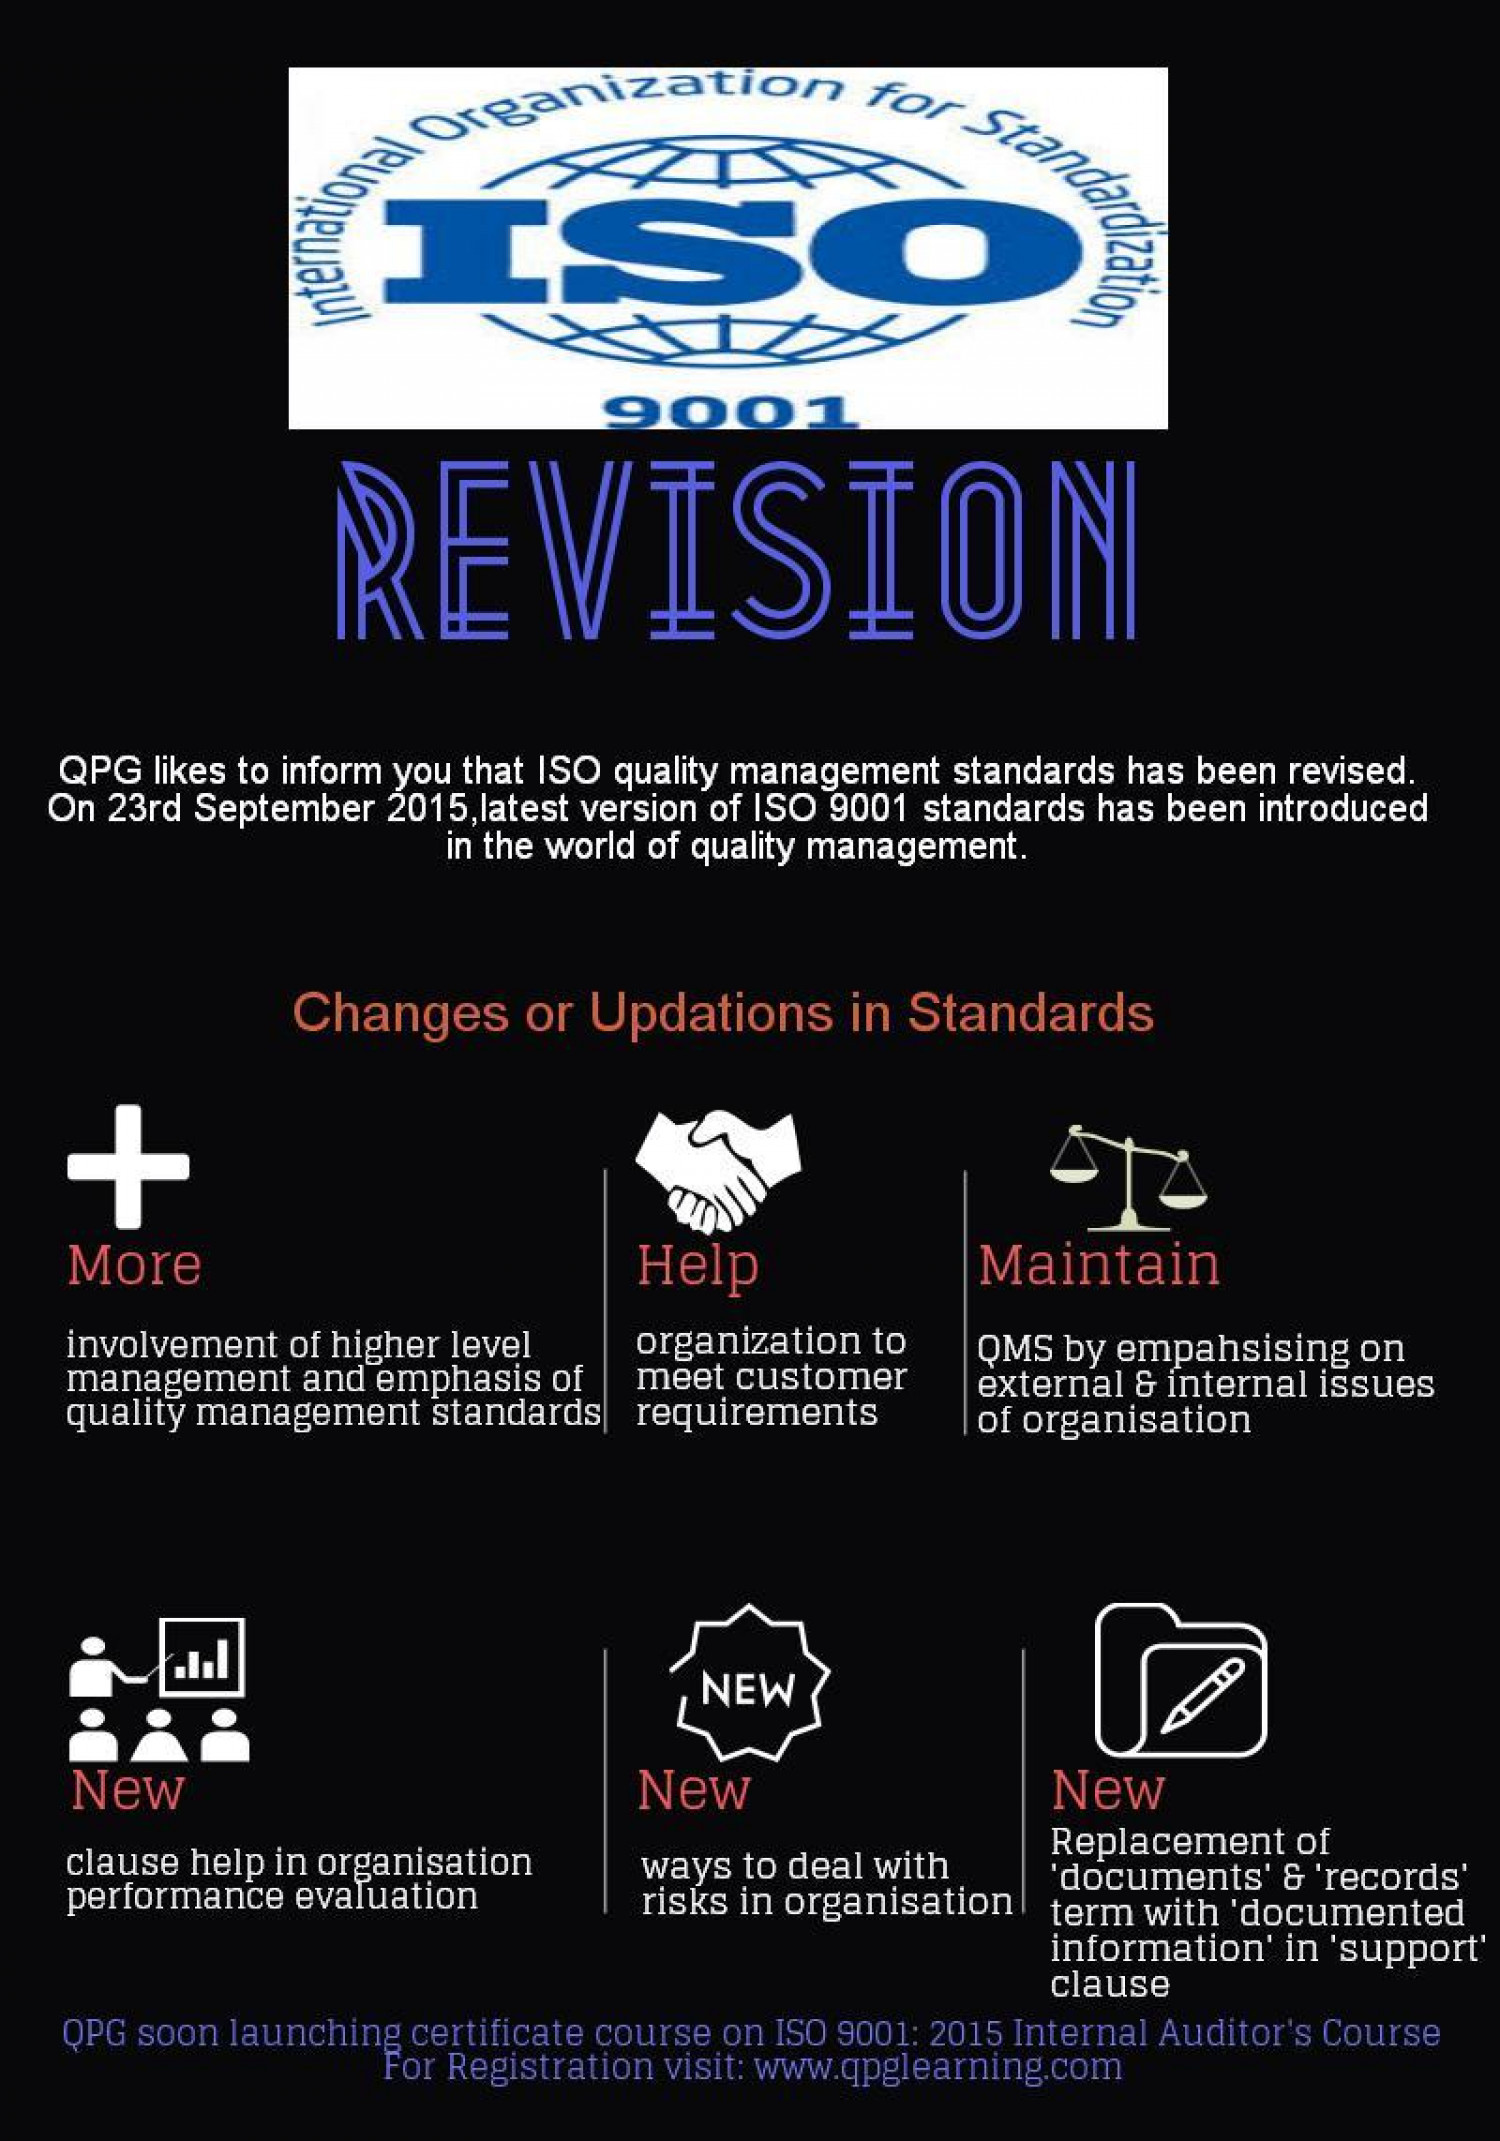 ISO 9001:2015 standards   Visual.ly